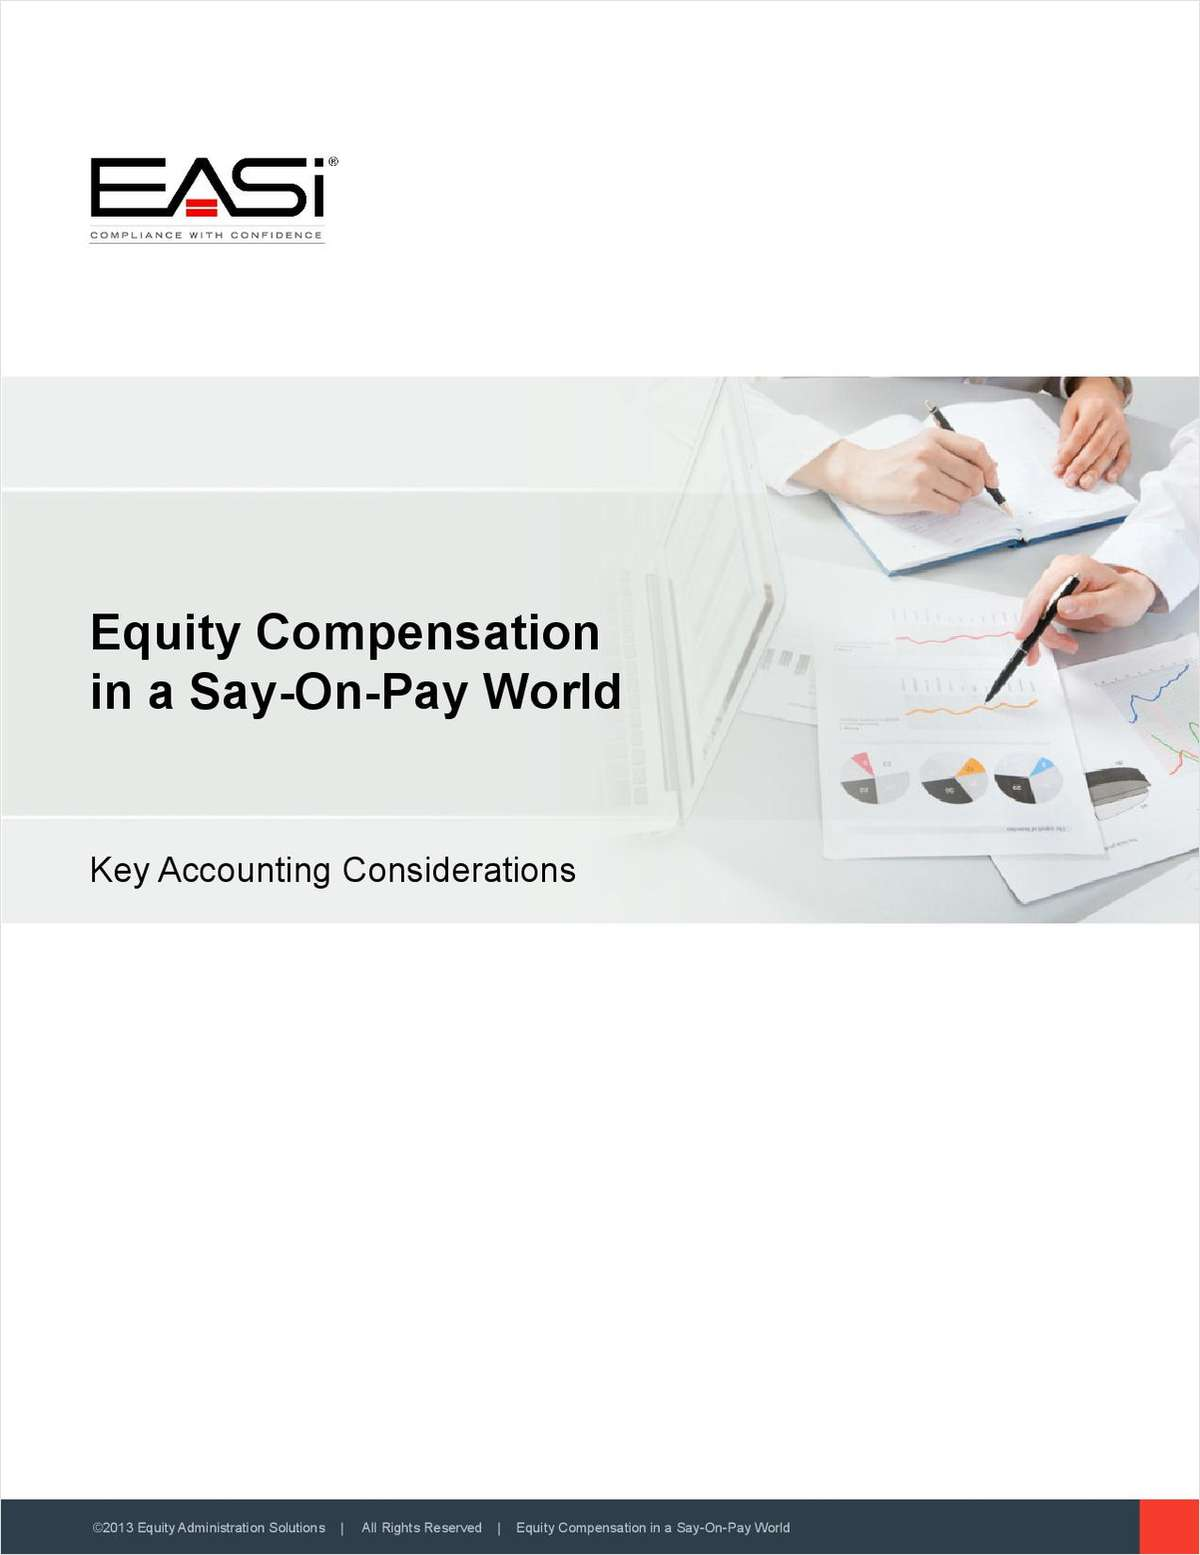 Equity Compensation in a Say-On-Pay World